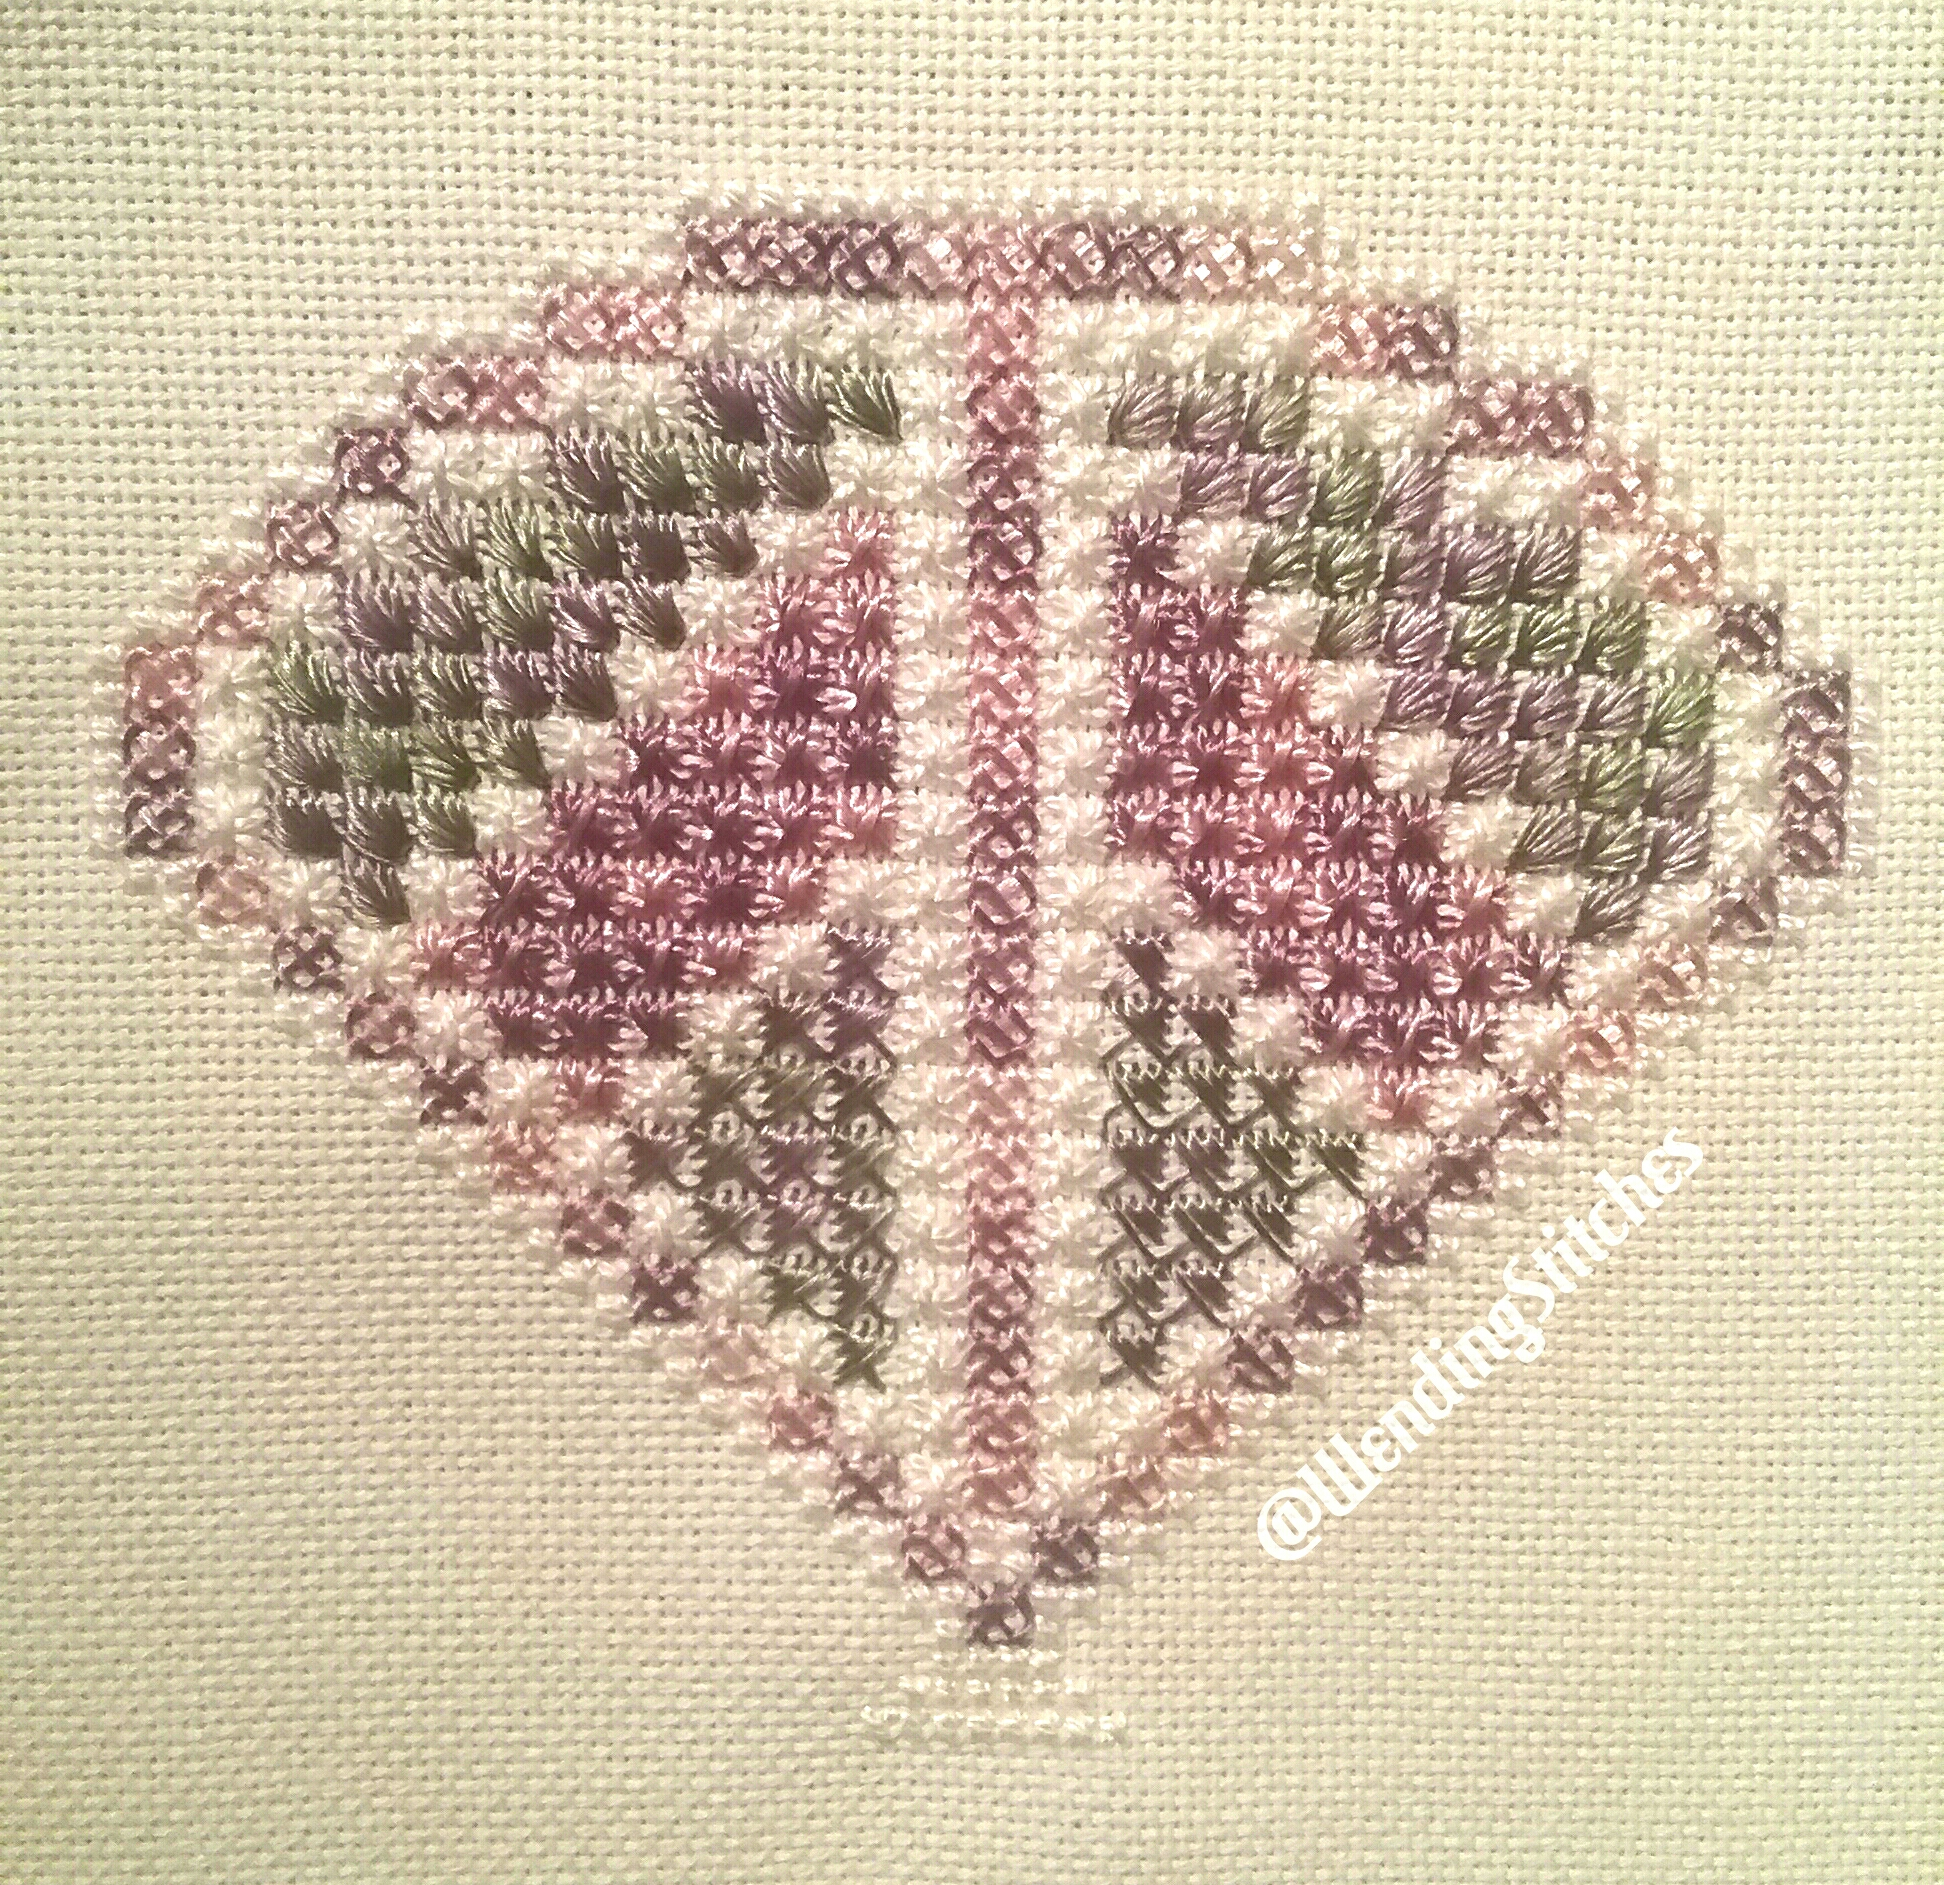 Colours used: African Violet and Candy Mix Charted and Stitched by Wending stitches Facebook:  Wending Stitches  Instagram:  @wendingstitches